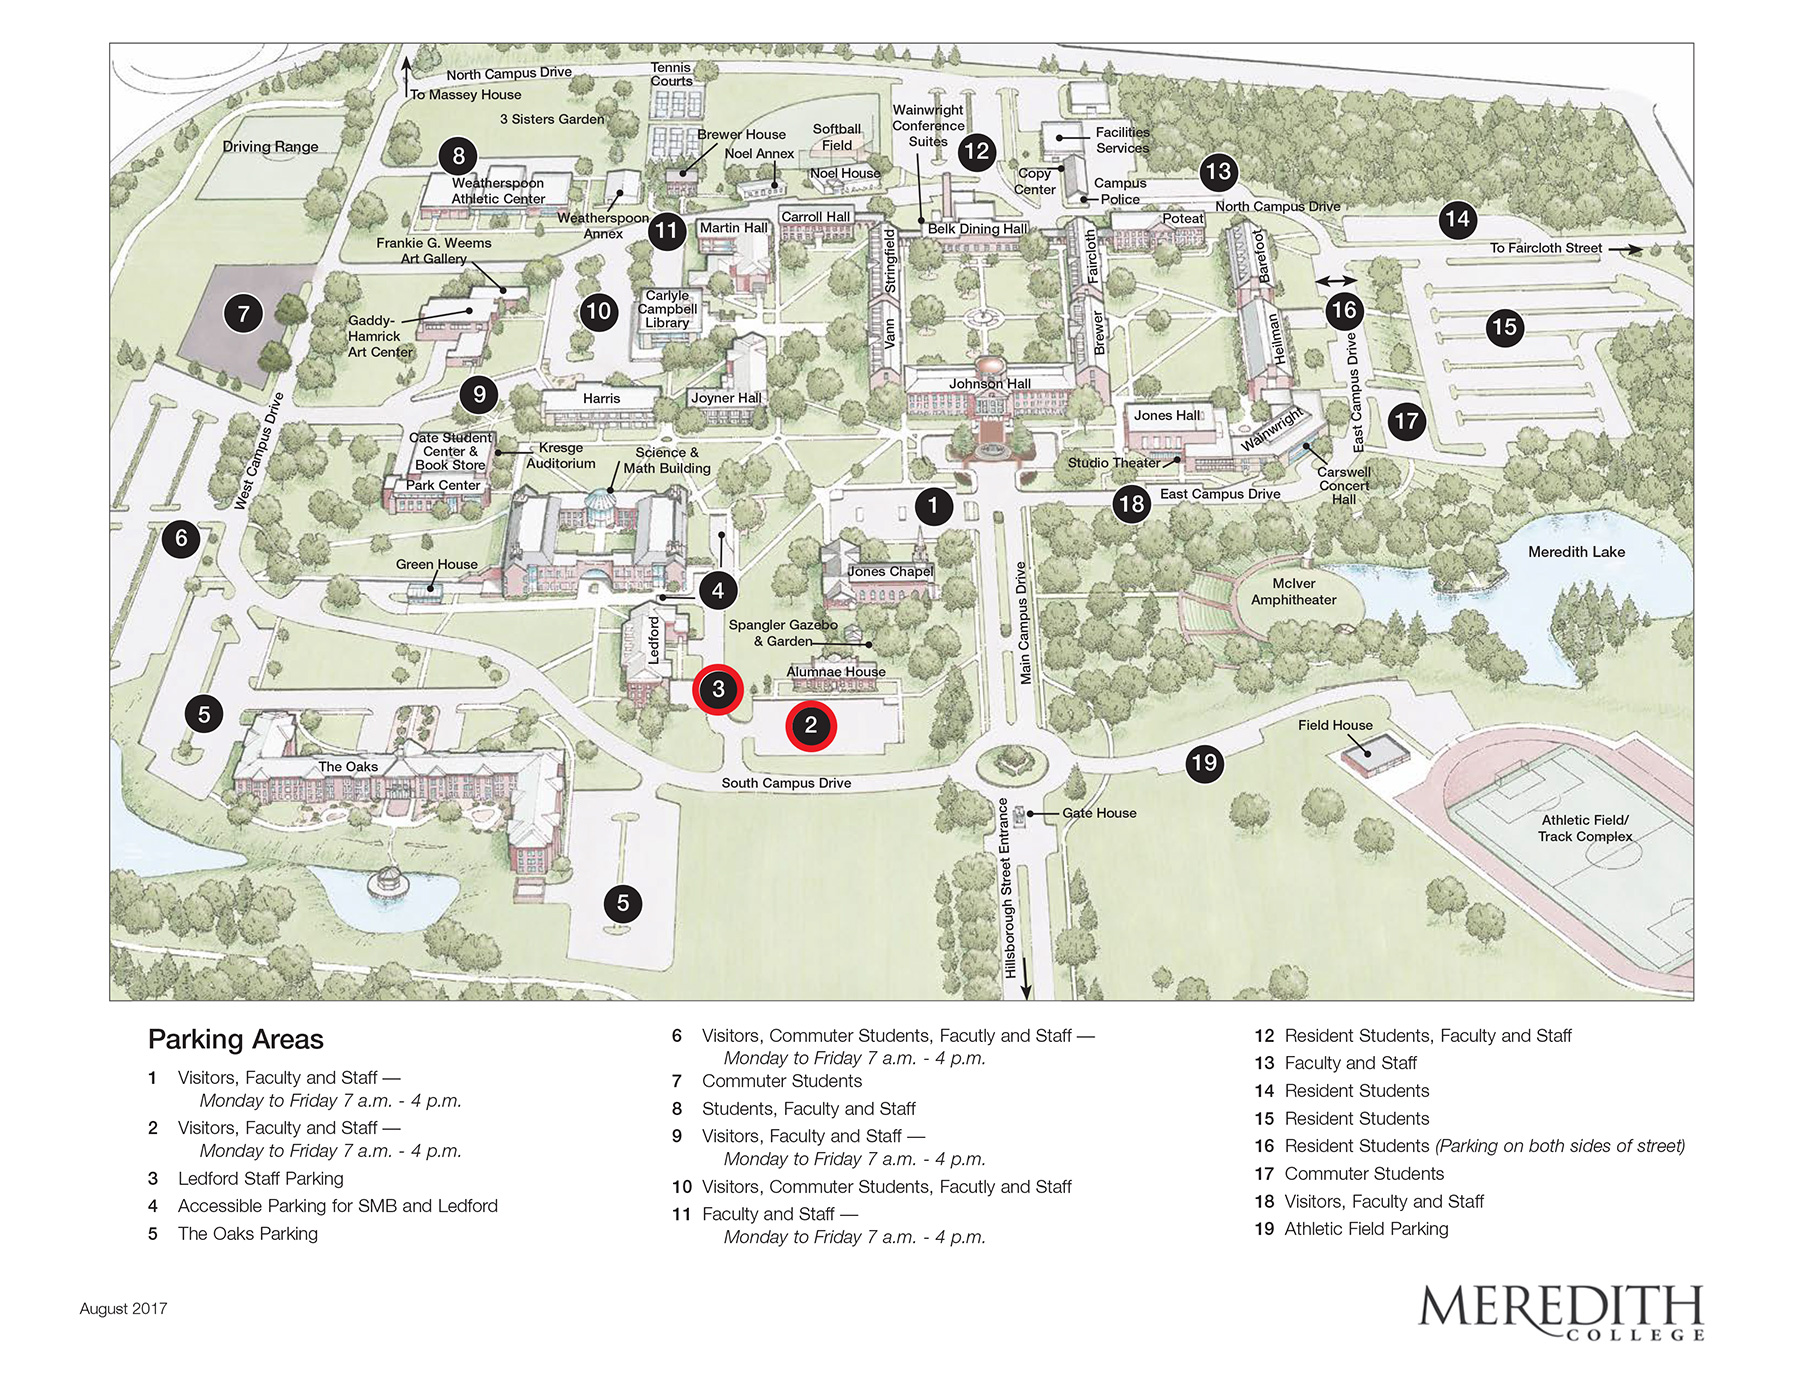 Map of Meredith College